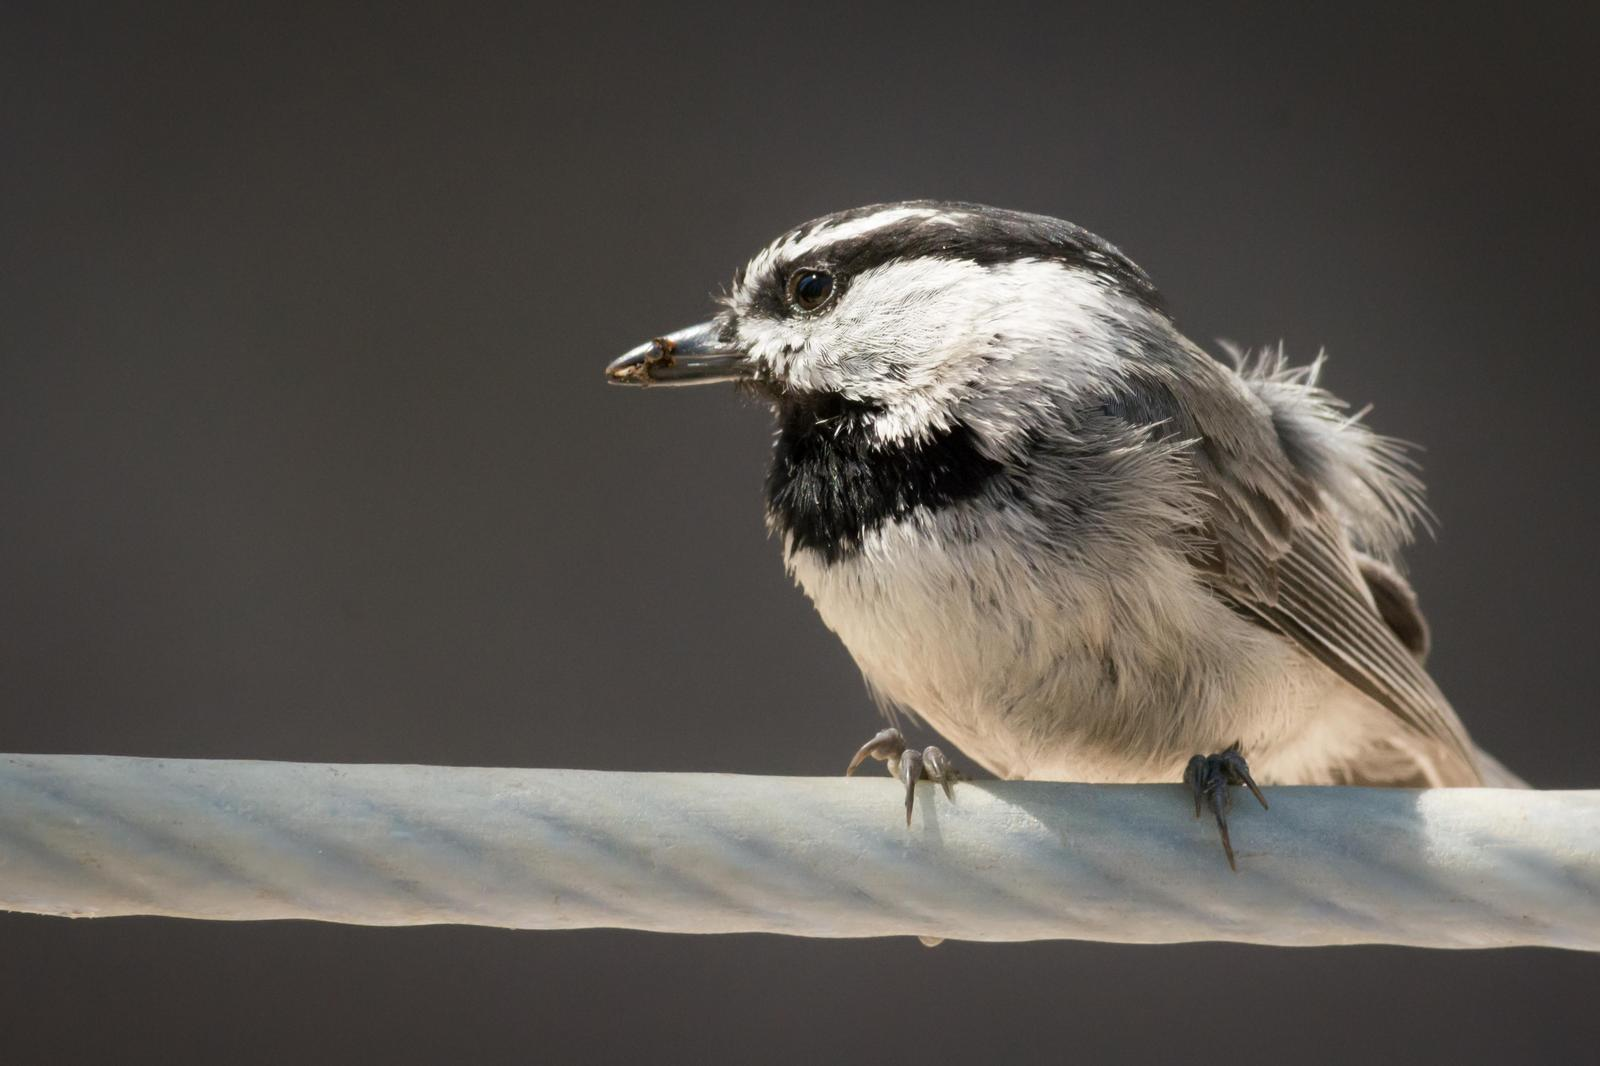 Mountain Chickadee Photo by Jesse Hodges